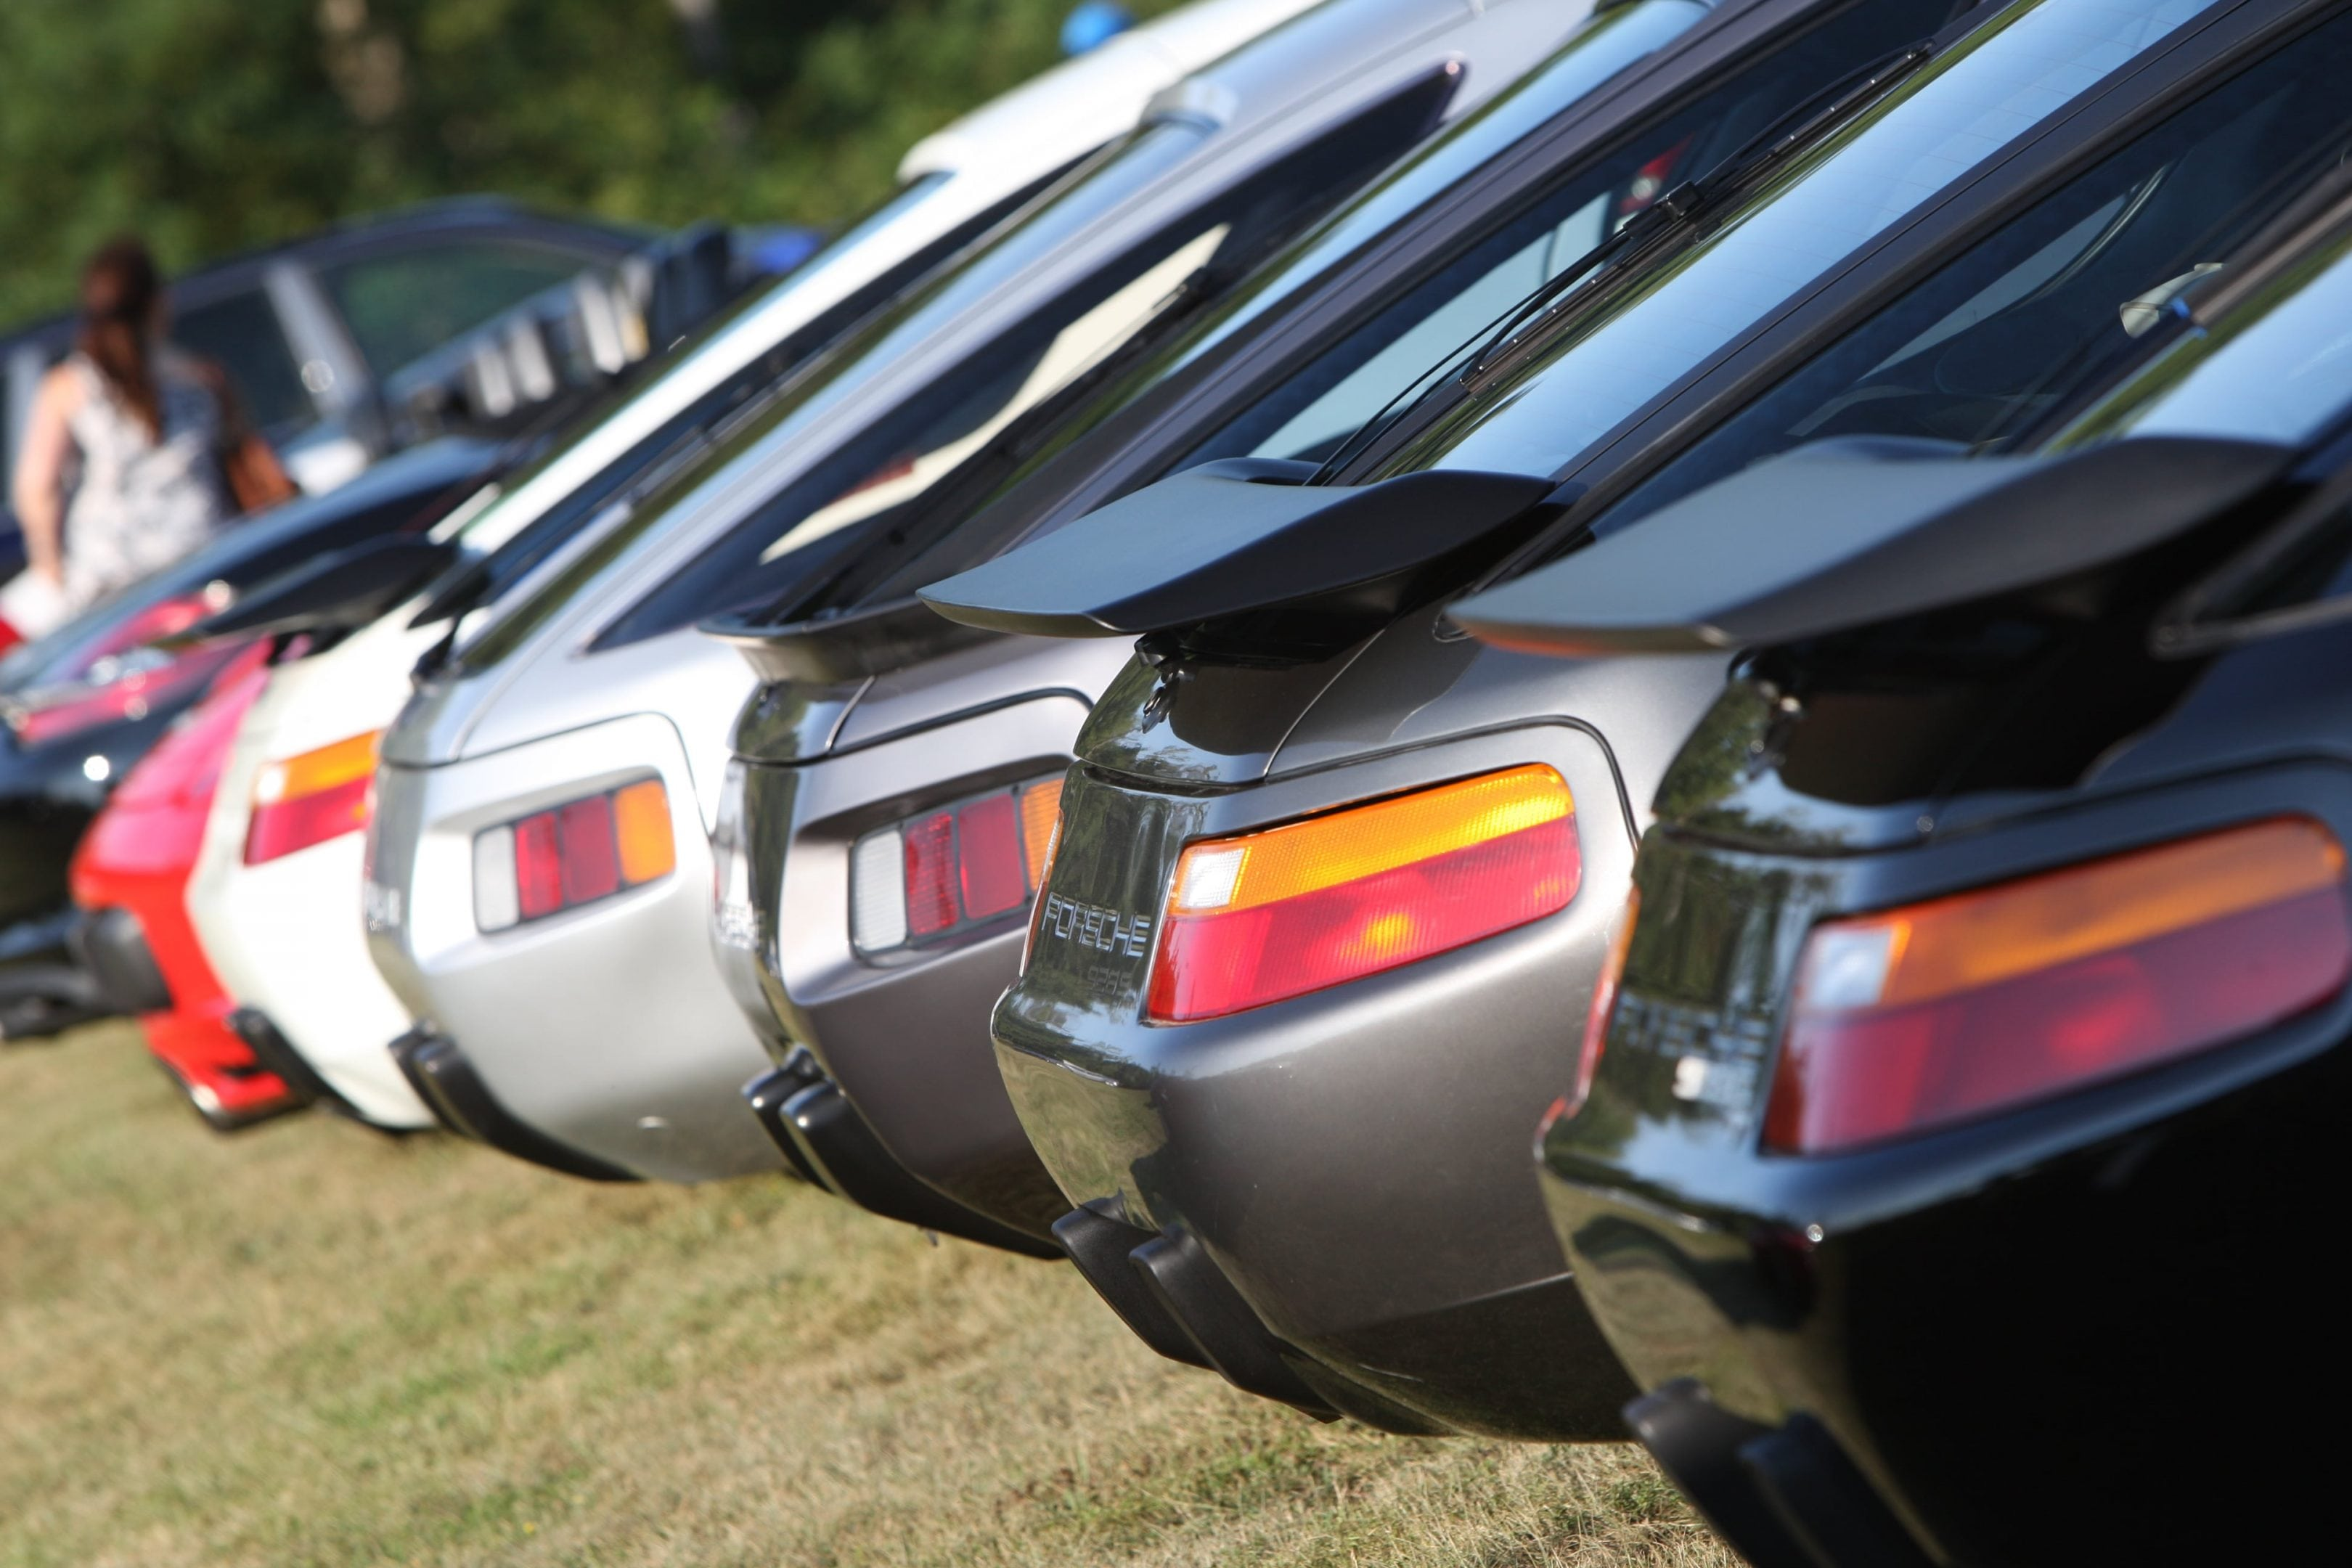 The event had a showing of more 928s than ever before.